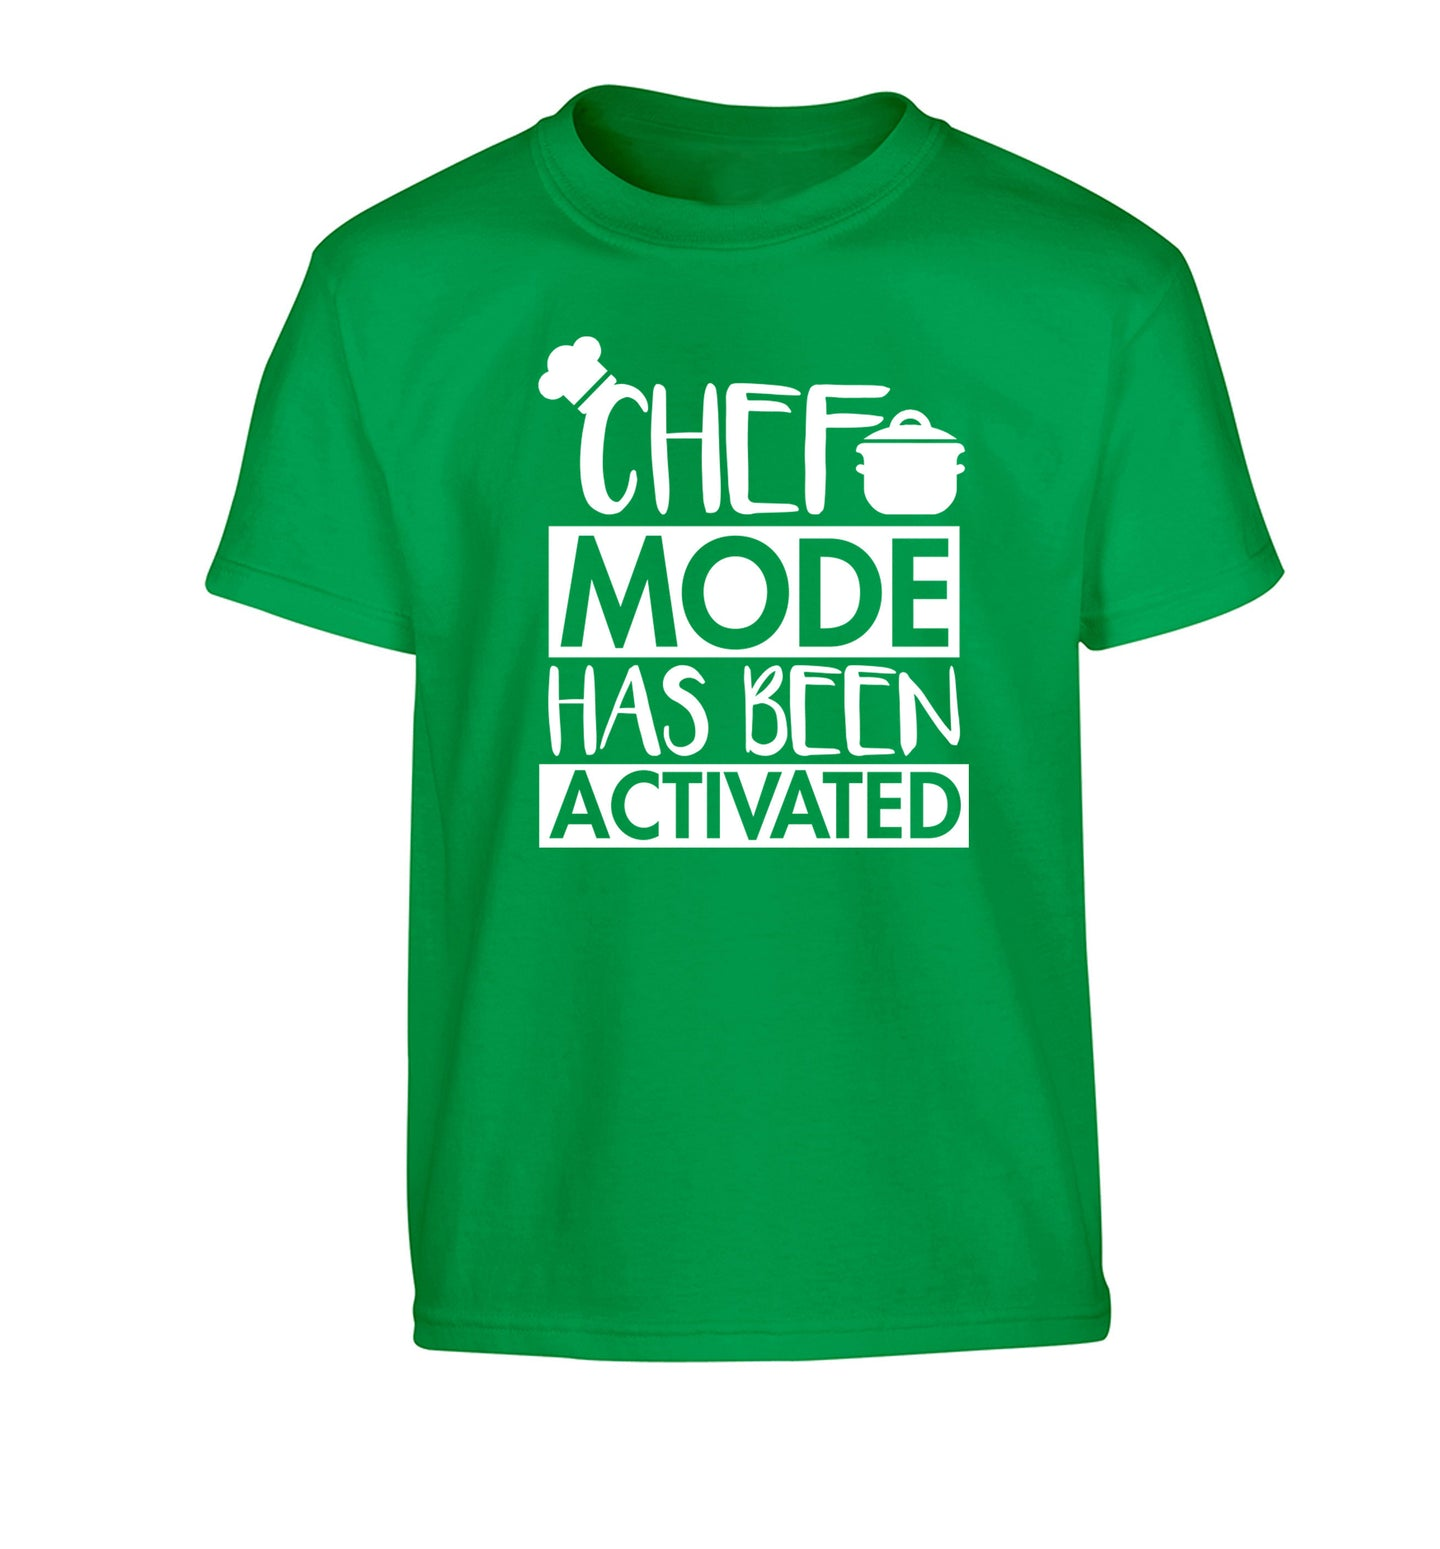 Chef mode has been activated Children's green Tshirt 12-14 Years